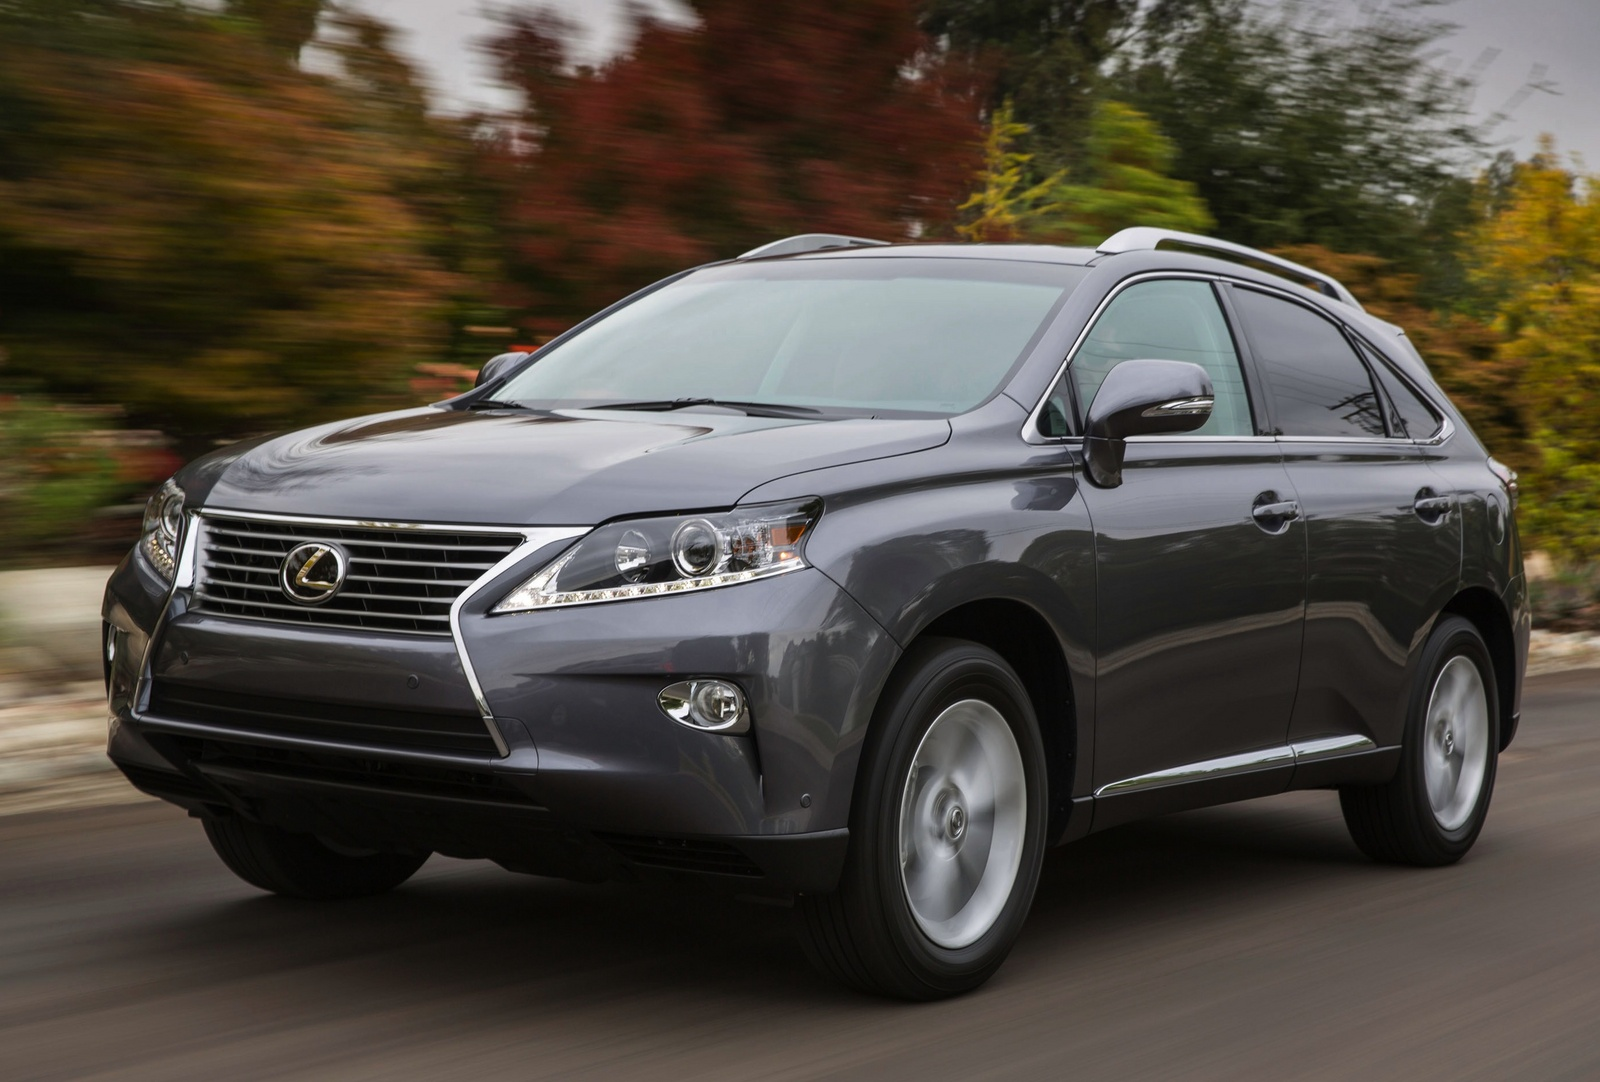 new 2015 lexus rx 350 for sale cargurus. Black Bedroom Furniture Sets. Home Design Ideas